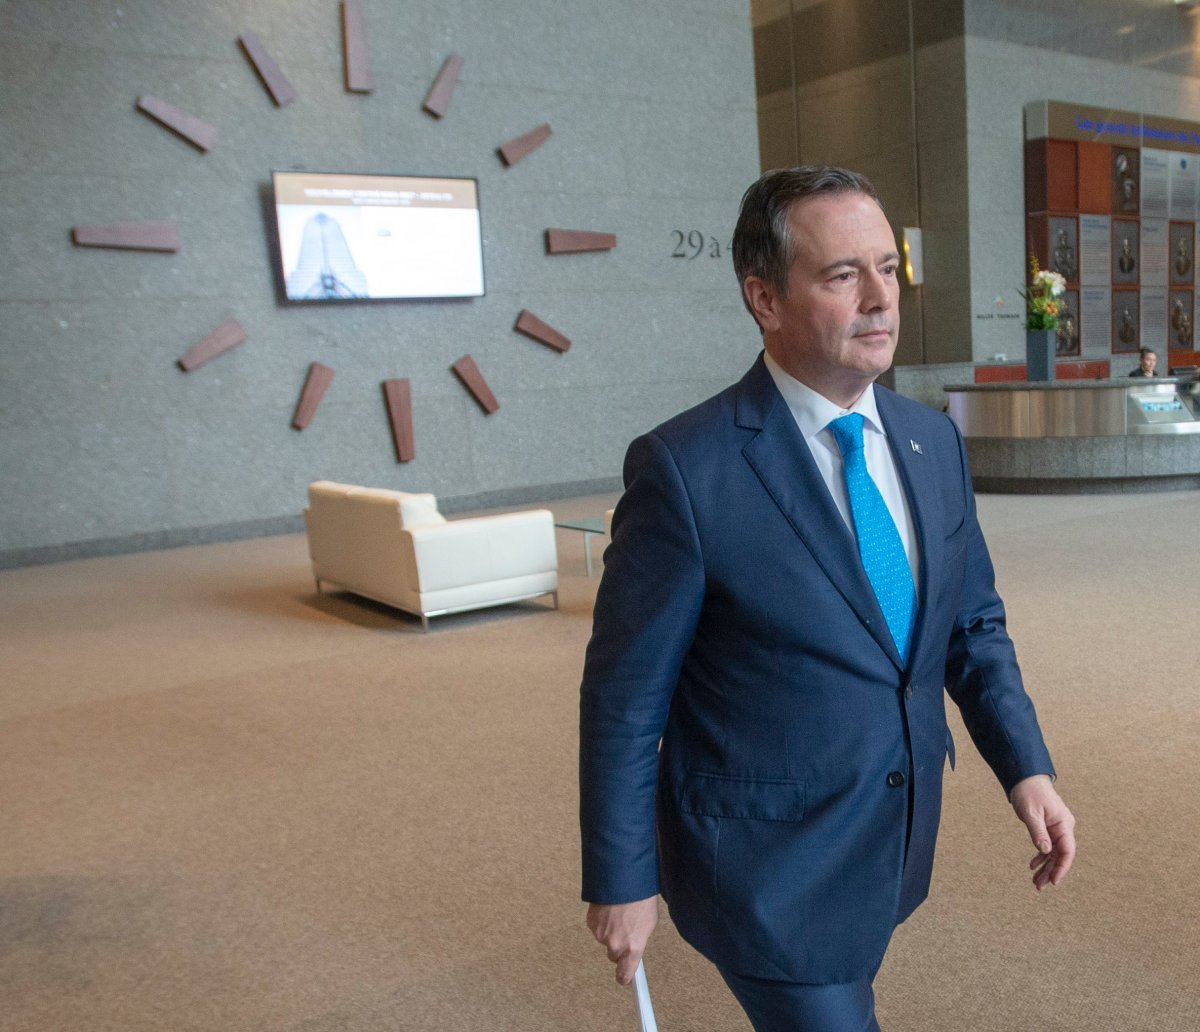 Alberta Premier Jason Kenney leaves after speaking to the media Tuesday, February 4, 2020 in Montreal.